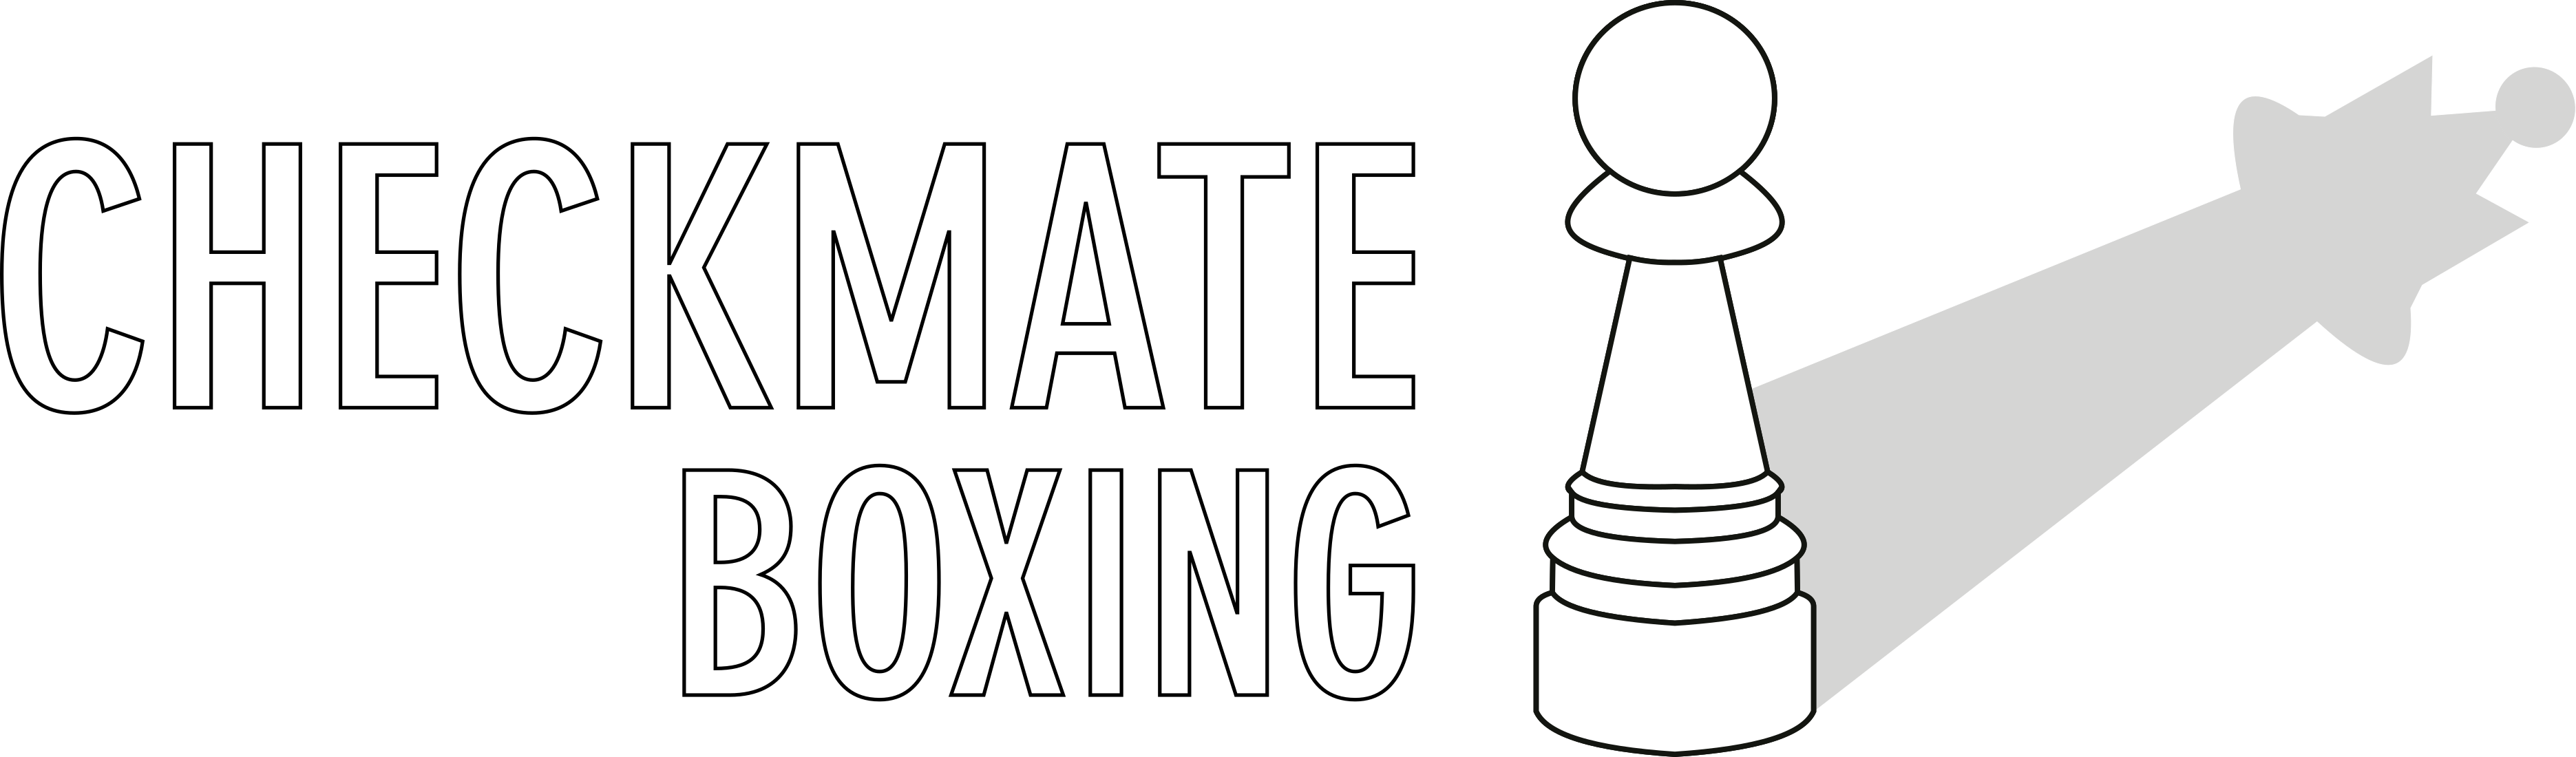 Checkmate Boxing